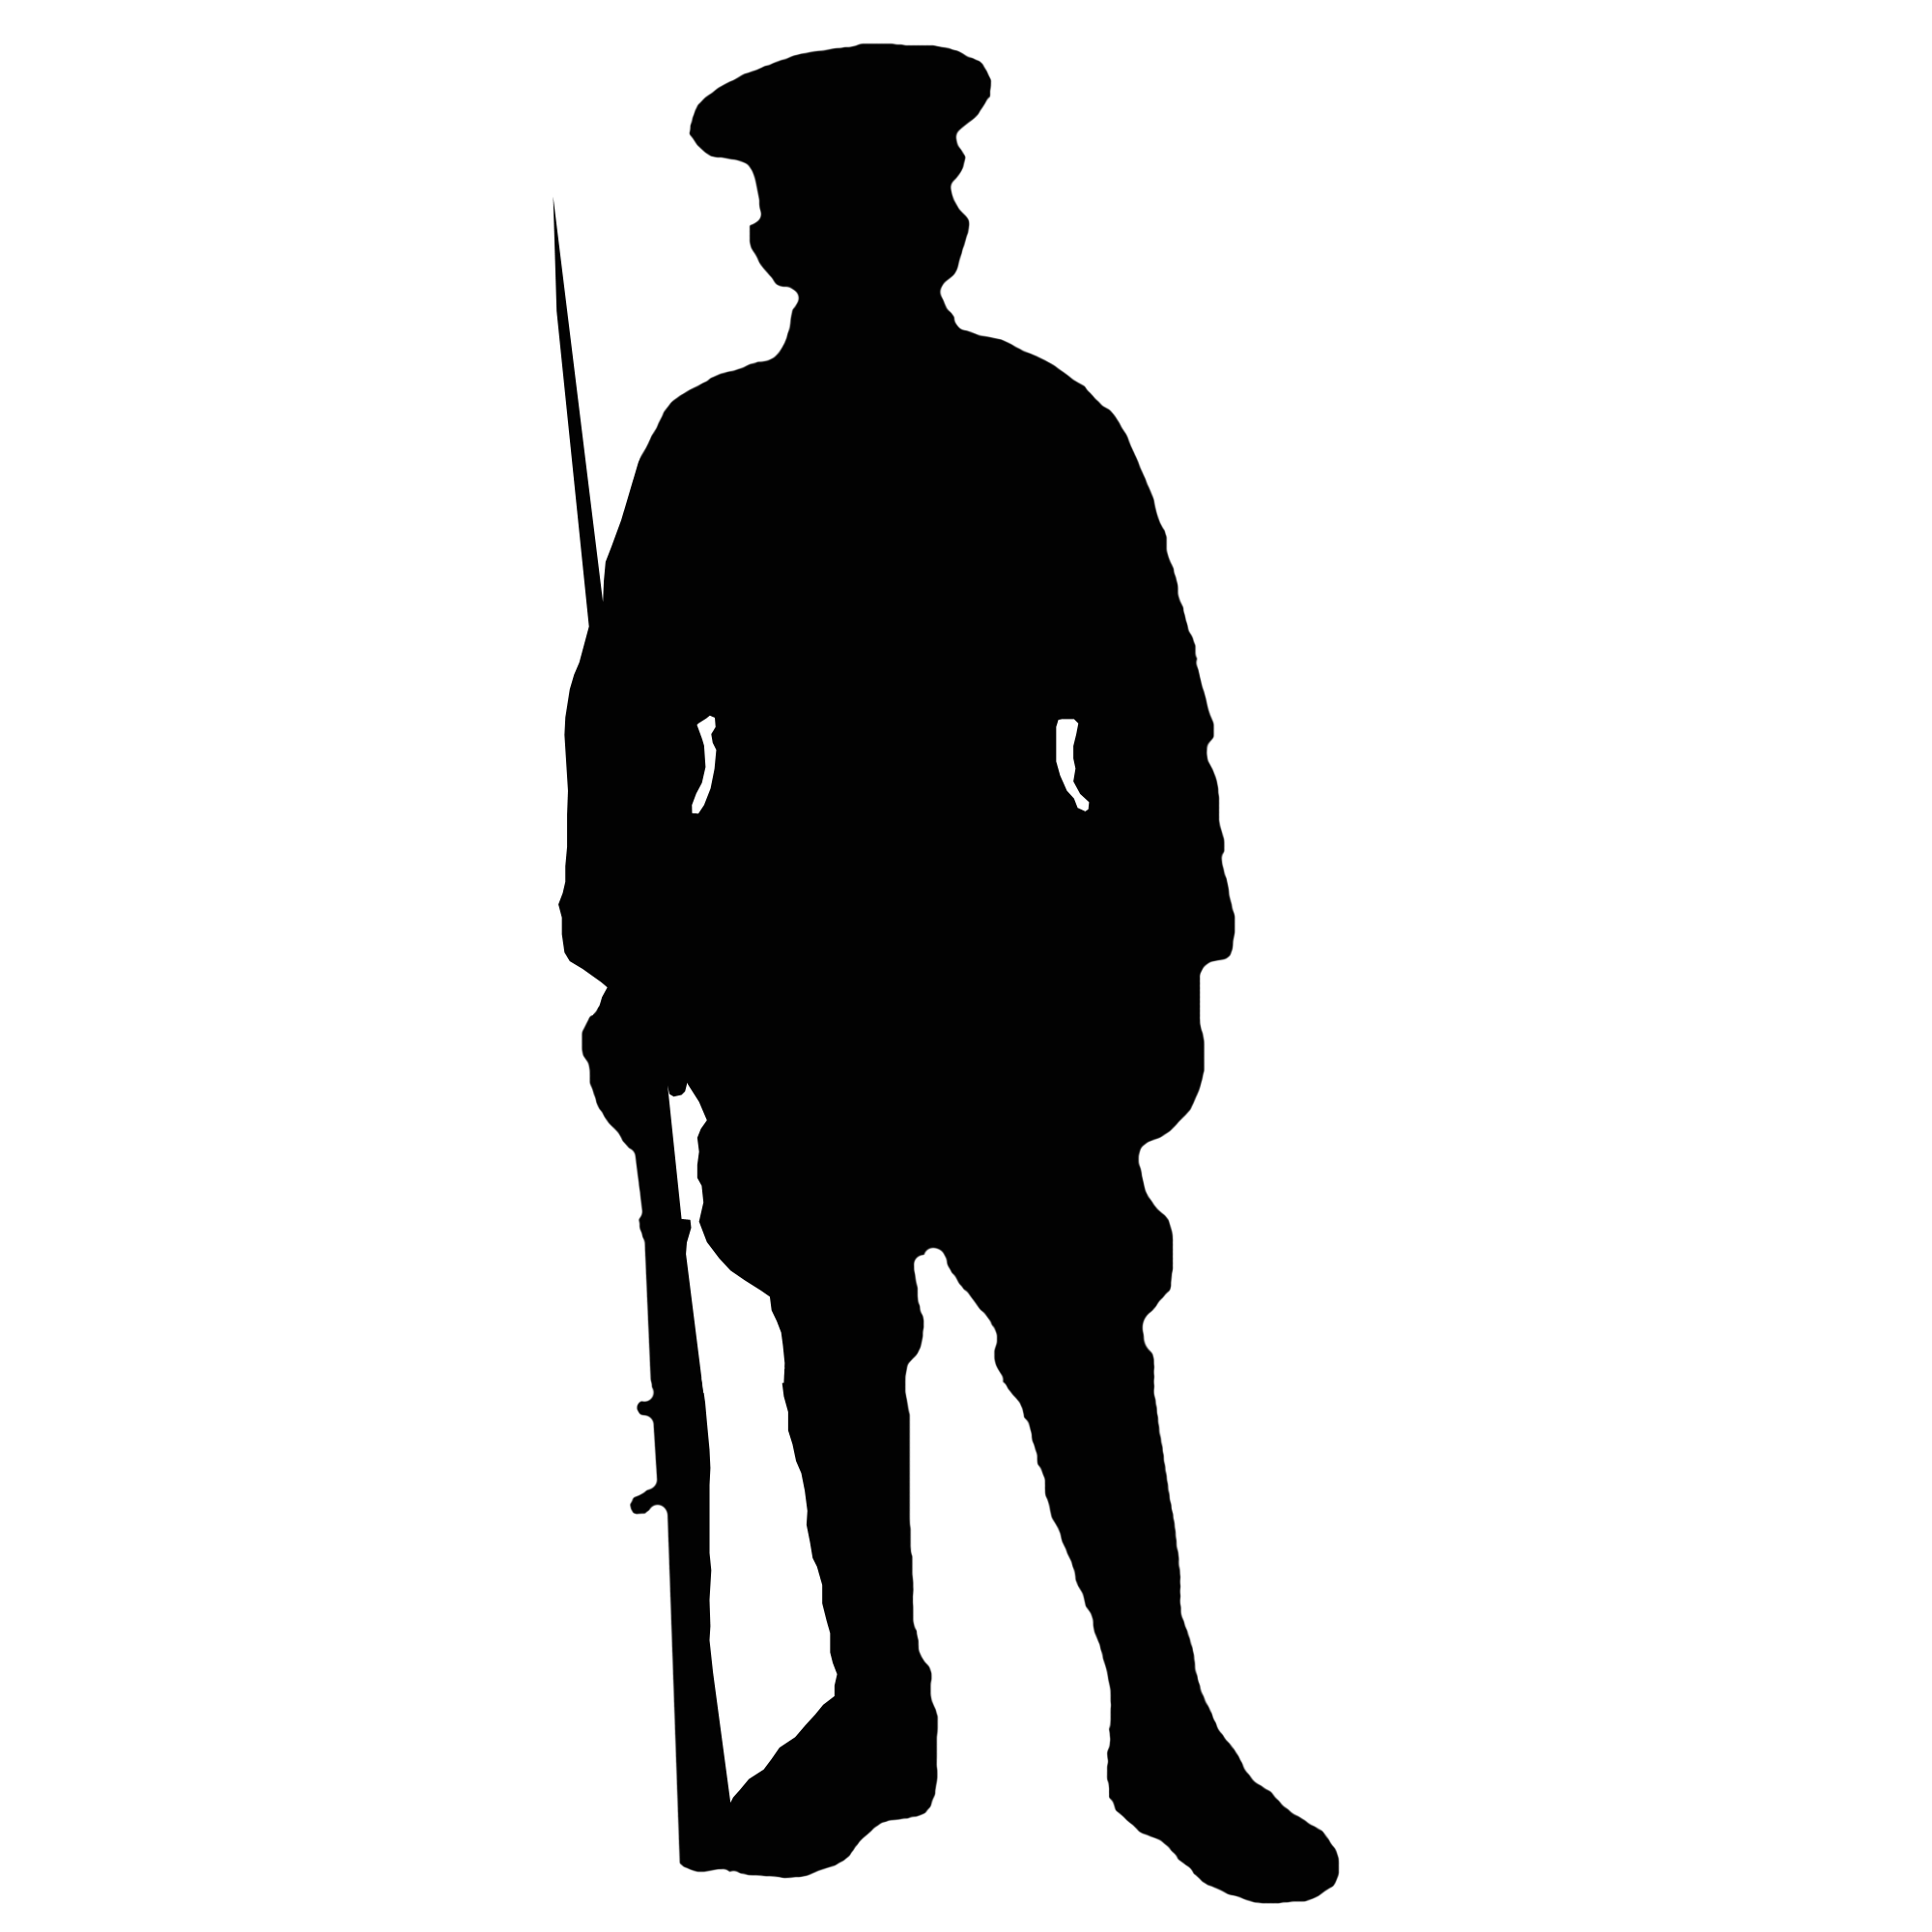 Soldier silhouette png. World war at getdrawings